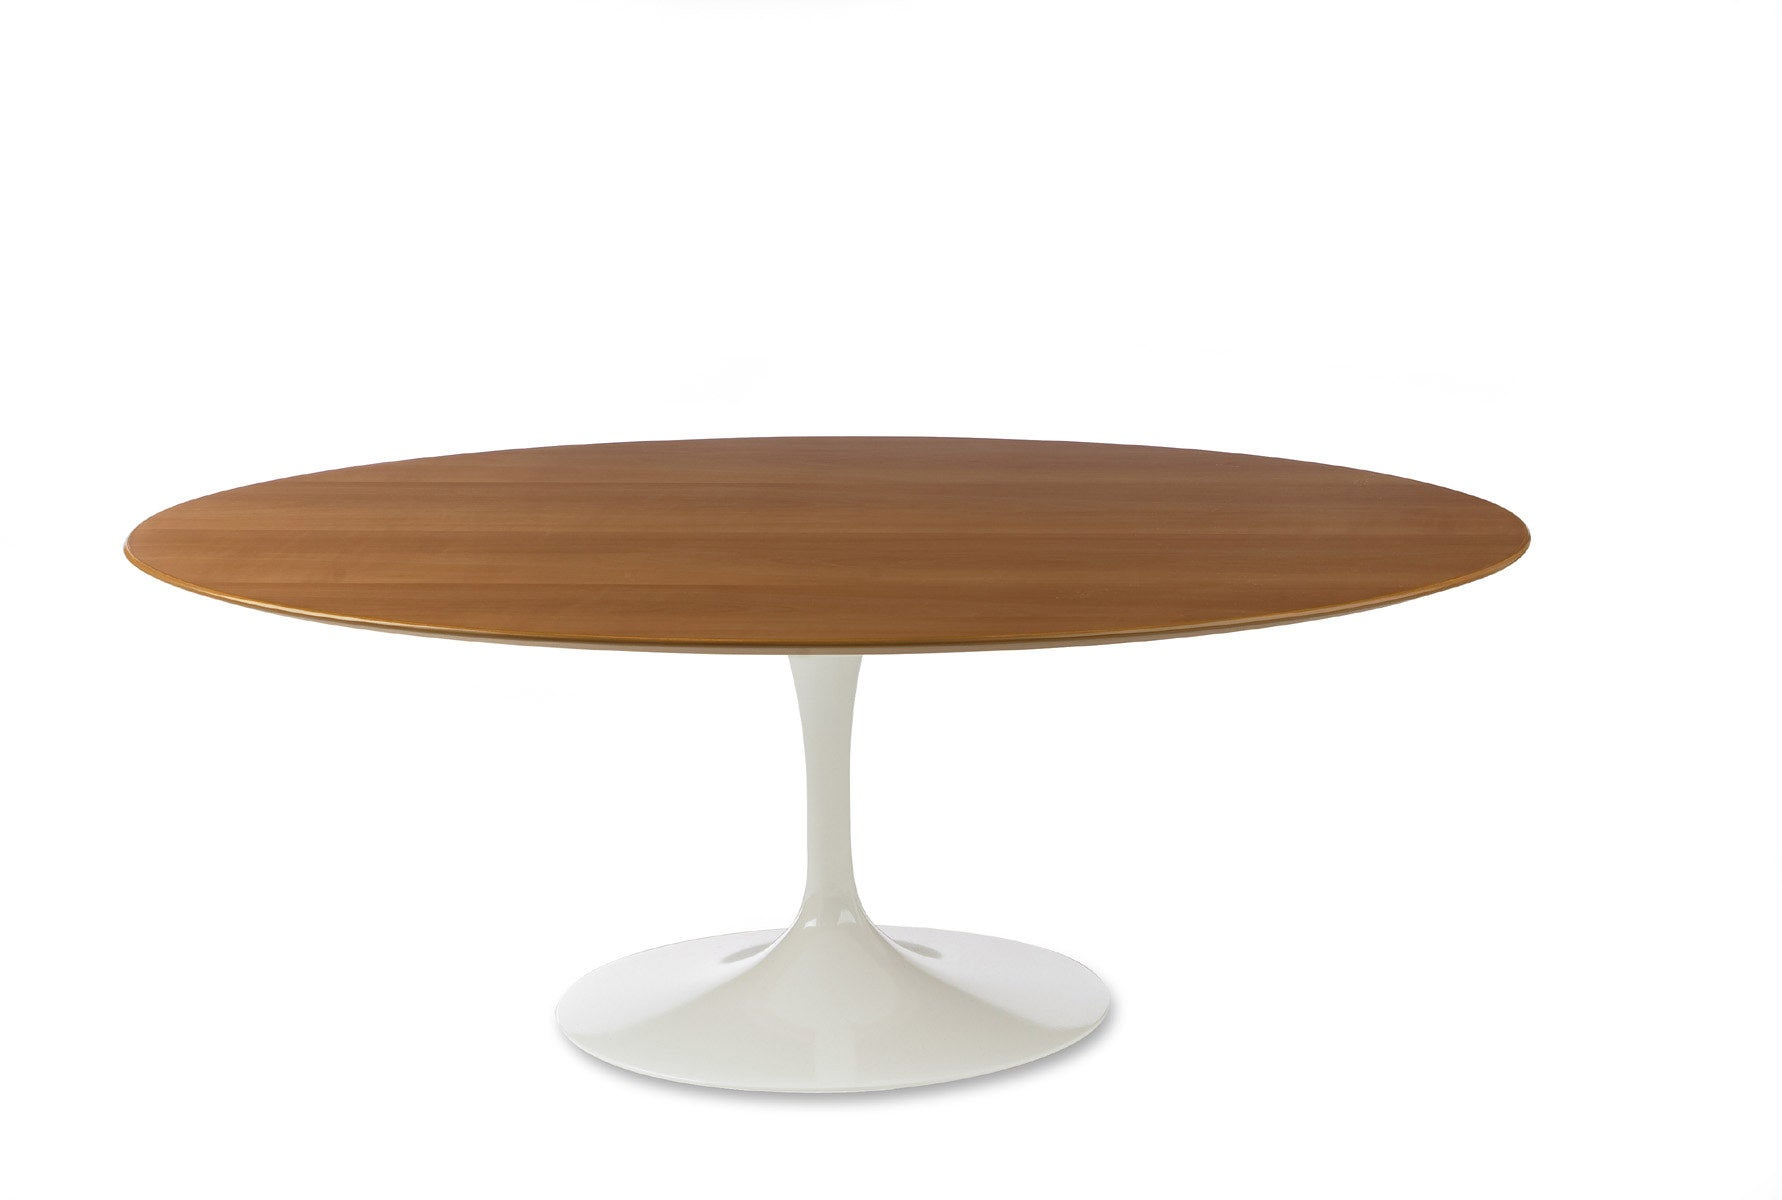 Saarinen Tulip Dining Table Oval Couch Potato Company - Tulip table wood top